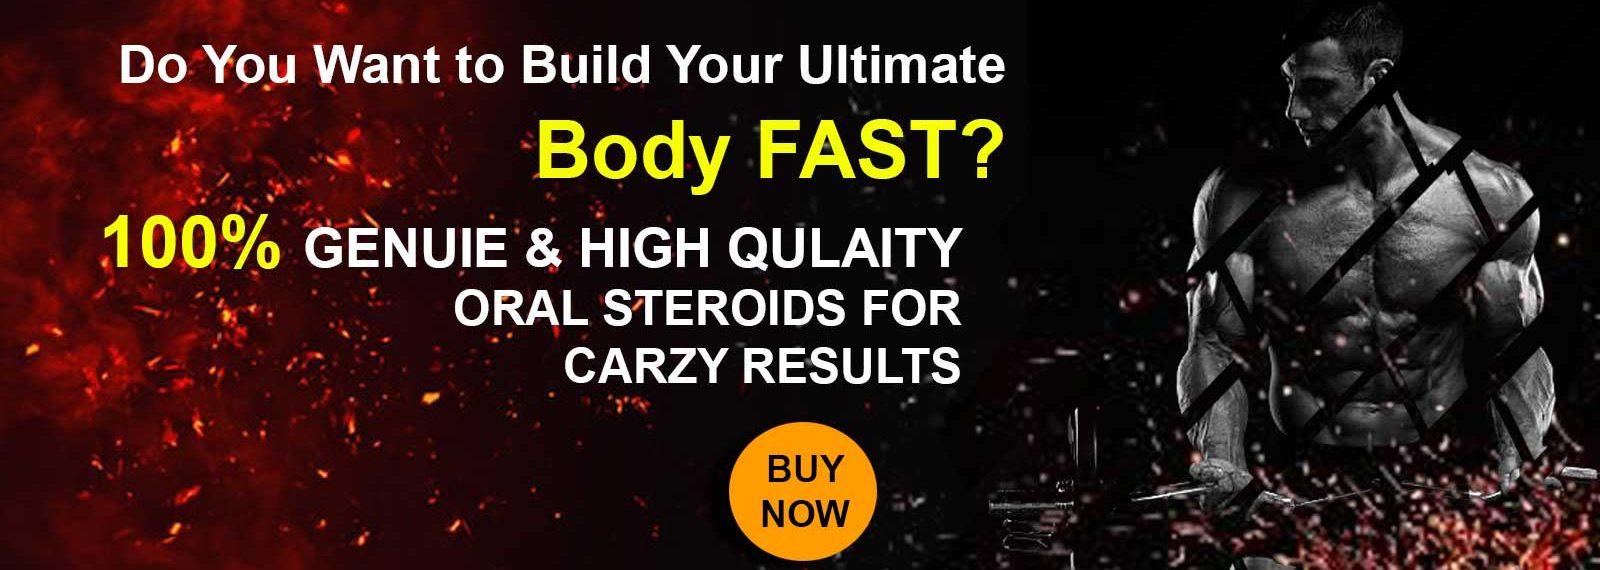 Best place to buy real steroids online